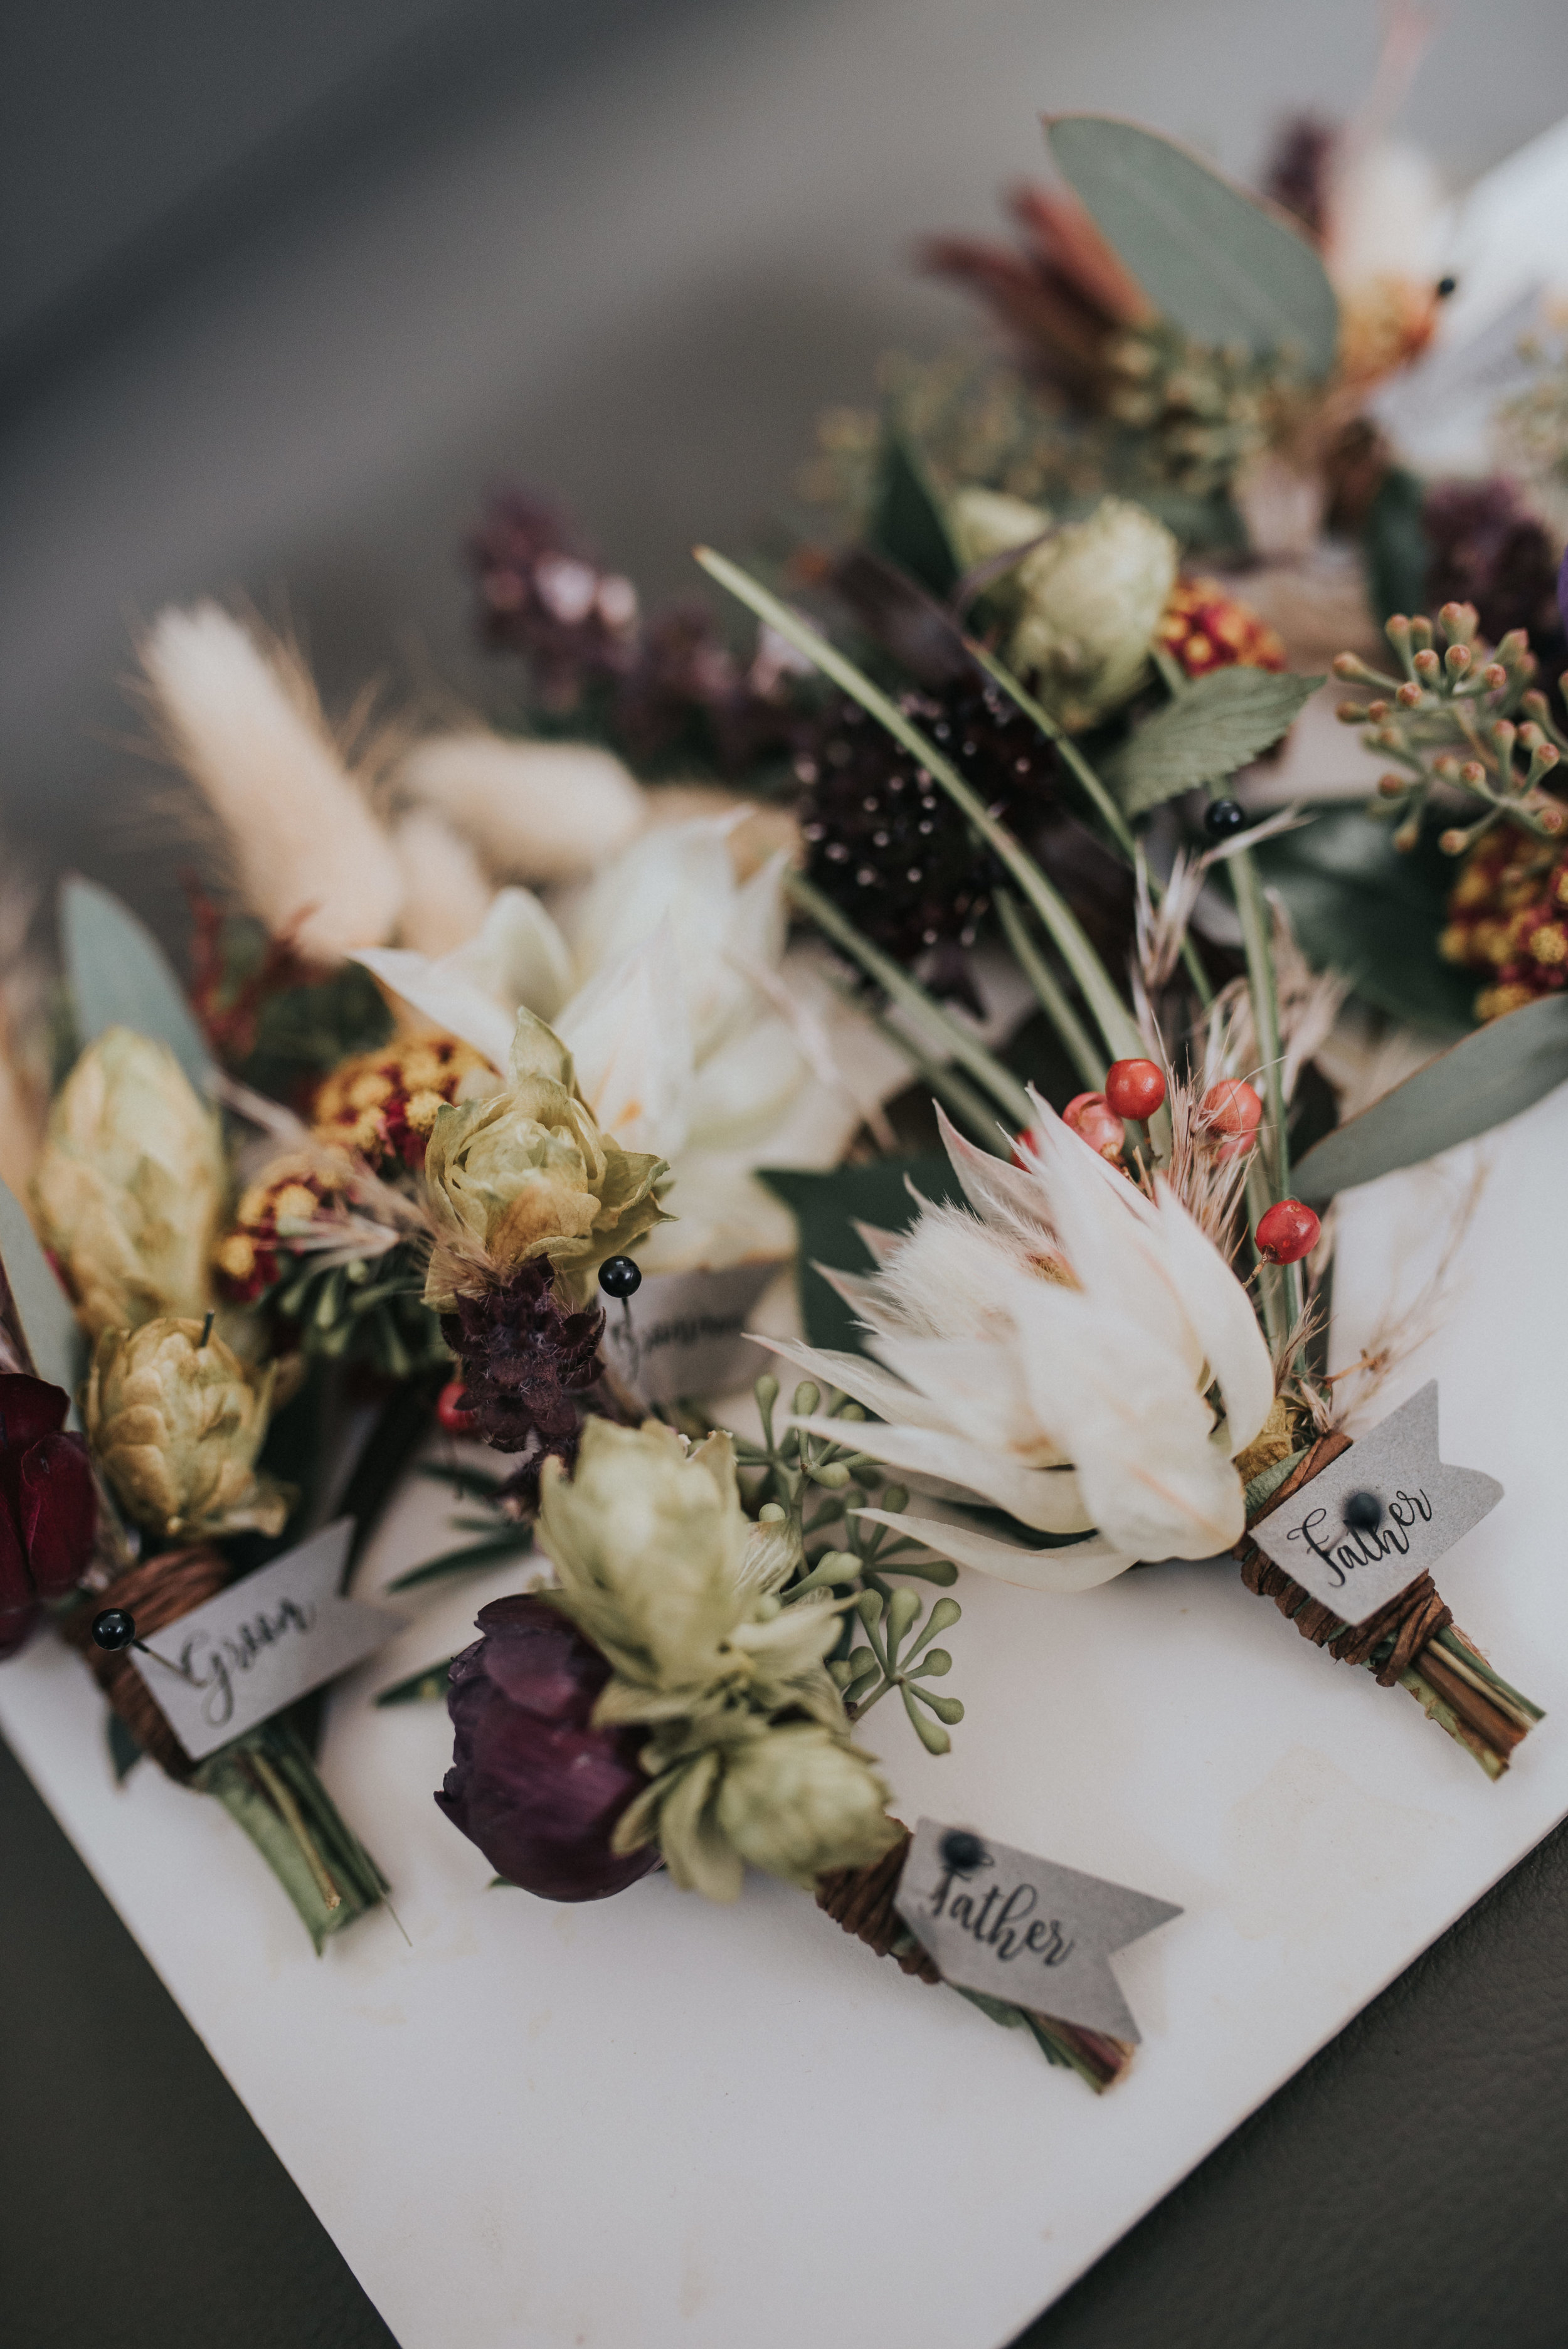 Flowers by Lace and Lilies, bridal bouquet, moody flowers, burgundy wedding, dusty colored wedding, pampas grass, lyons farmette wedding, colorado wedding, anemone, amnesia roses, boutonniere, groom boutonniere, texture, bride and groom, first look, wedding photography, flower crown, jewel tones, big floral crown